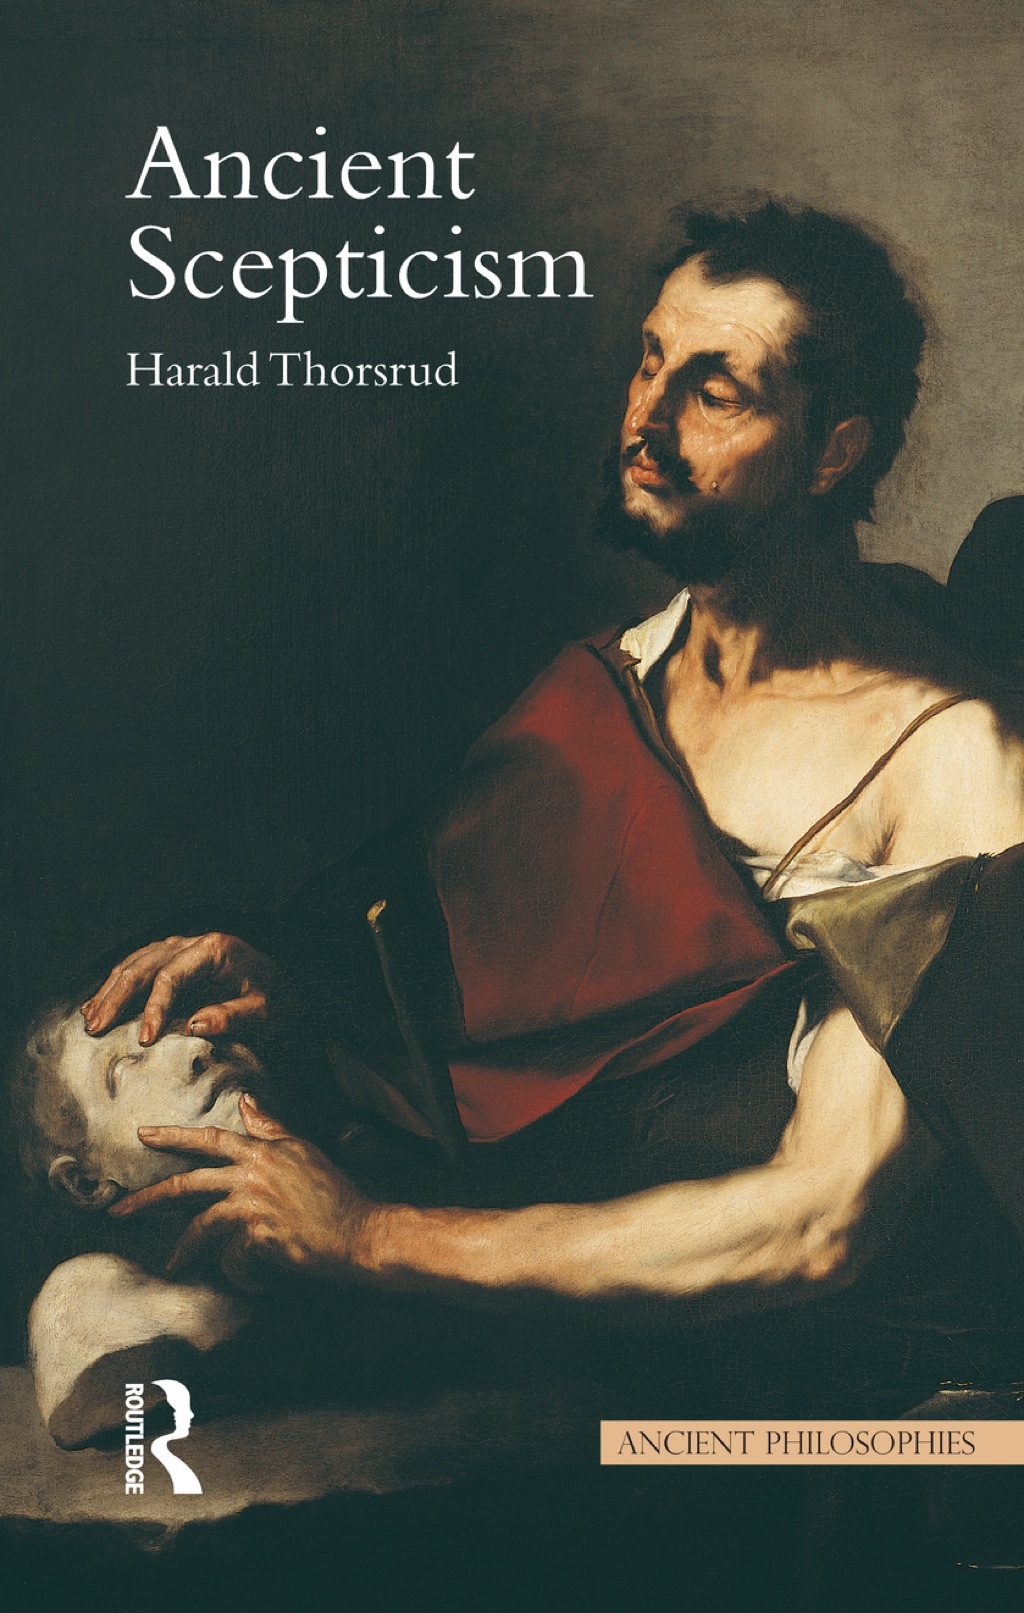 By Harald Thorsrud PRINTISBN: 9781844651313 E-TEXT ISBN: 9781317492825 Edition: 1